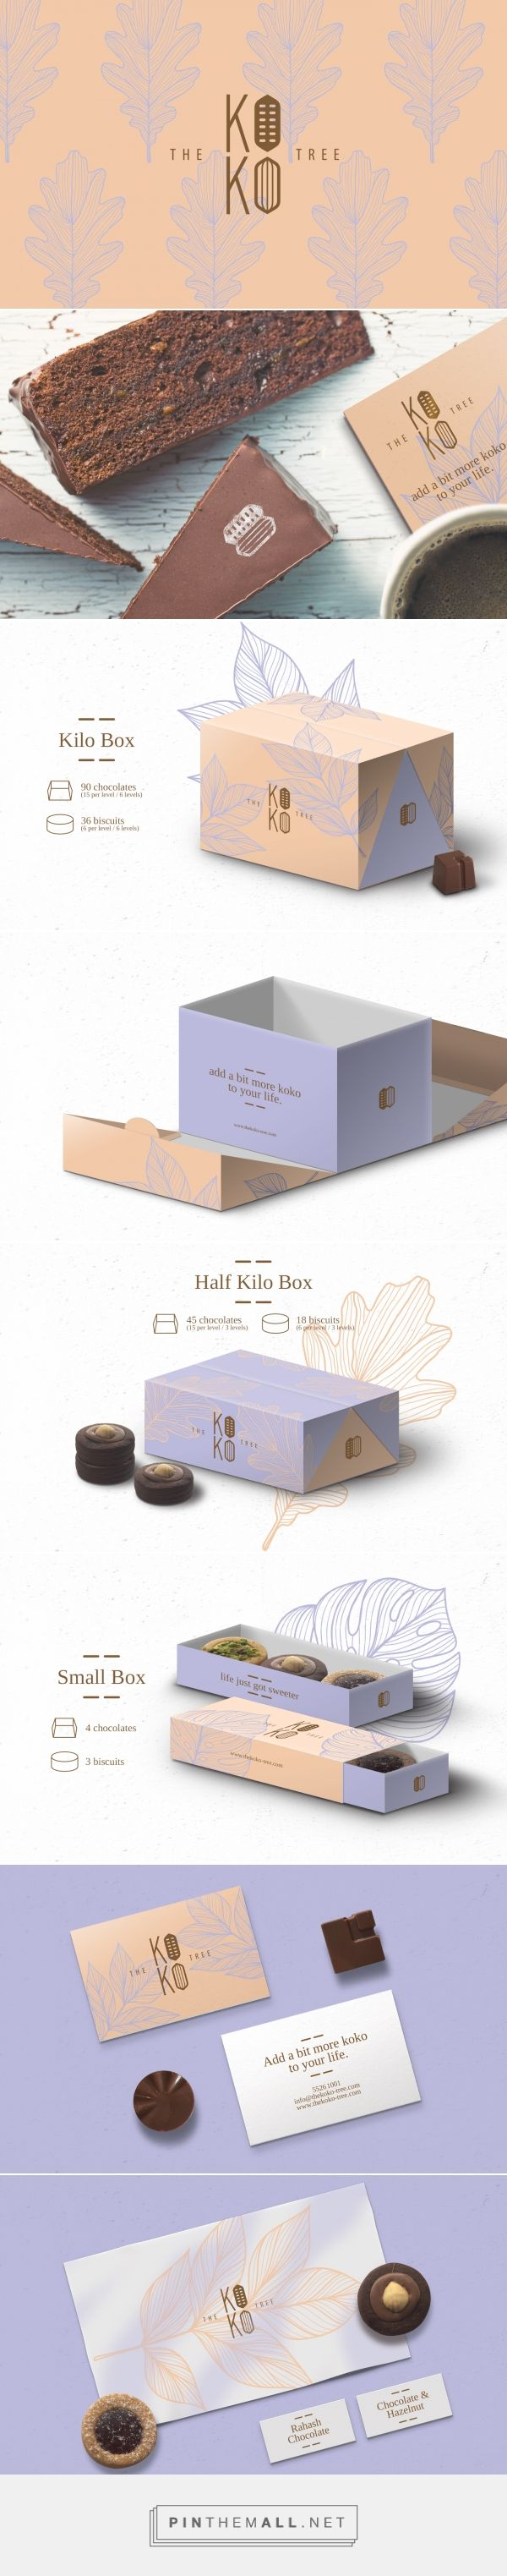 Branding, graphic design and packaging for The Koko Tree on Behance by Studio AIO Shuwaikh, Kuwait curated by Packaging Diva